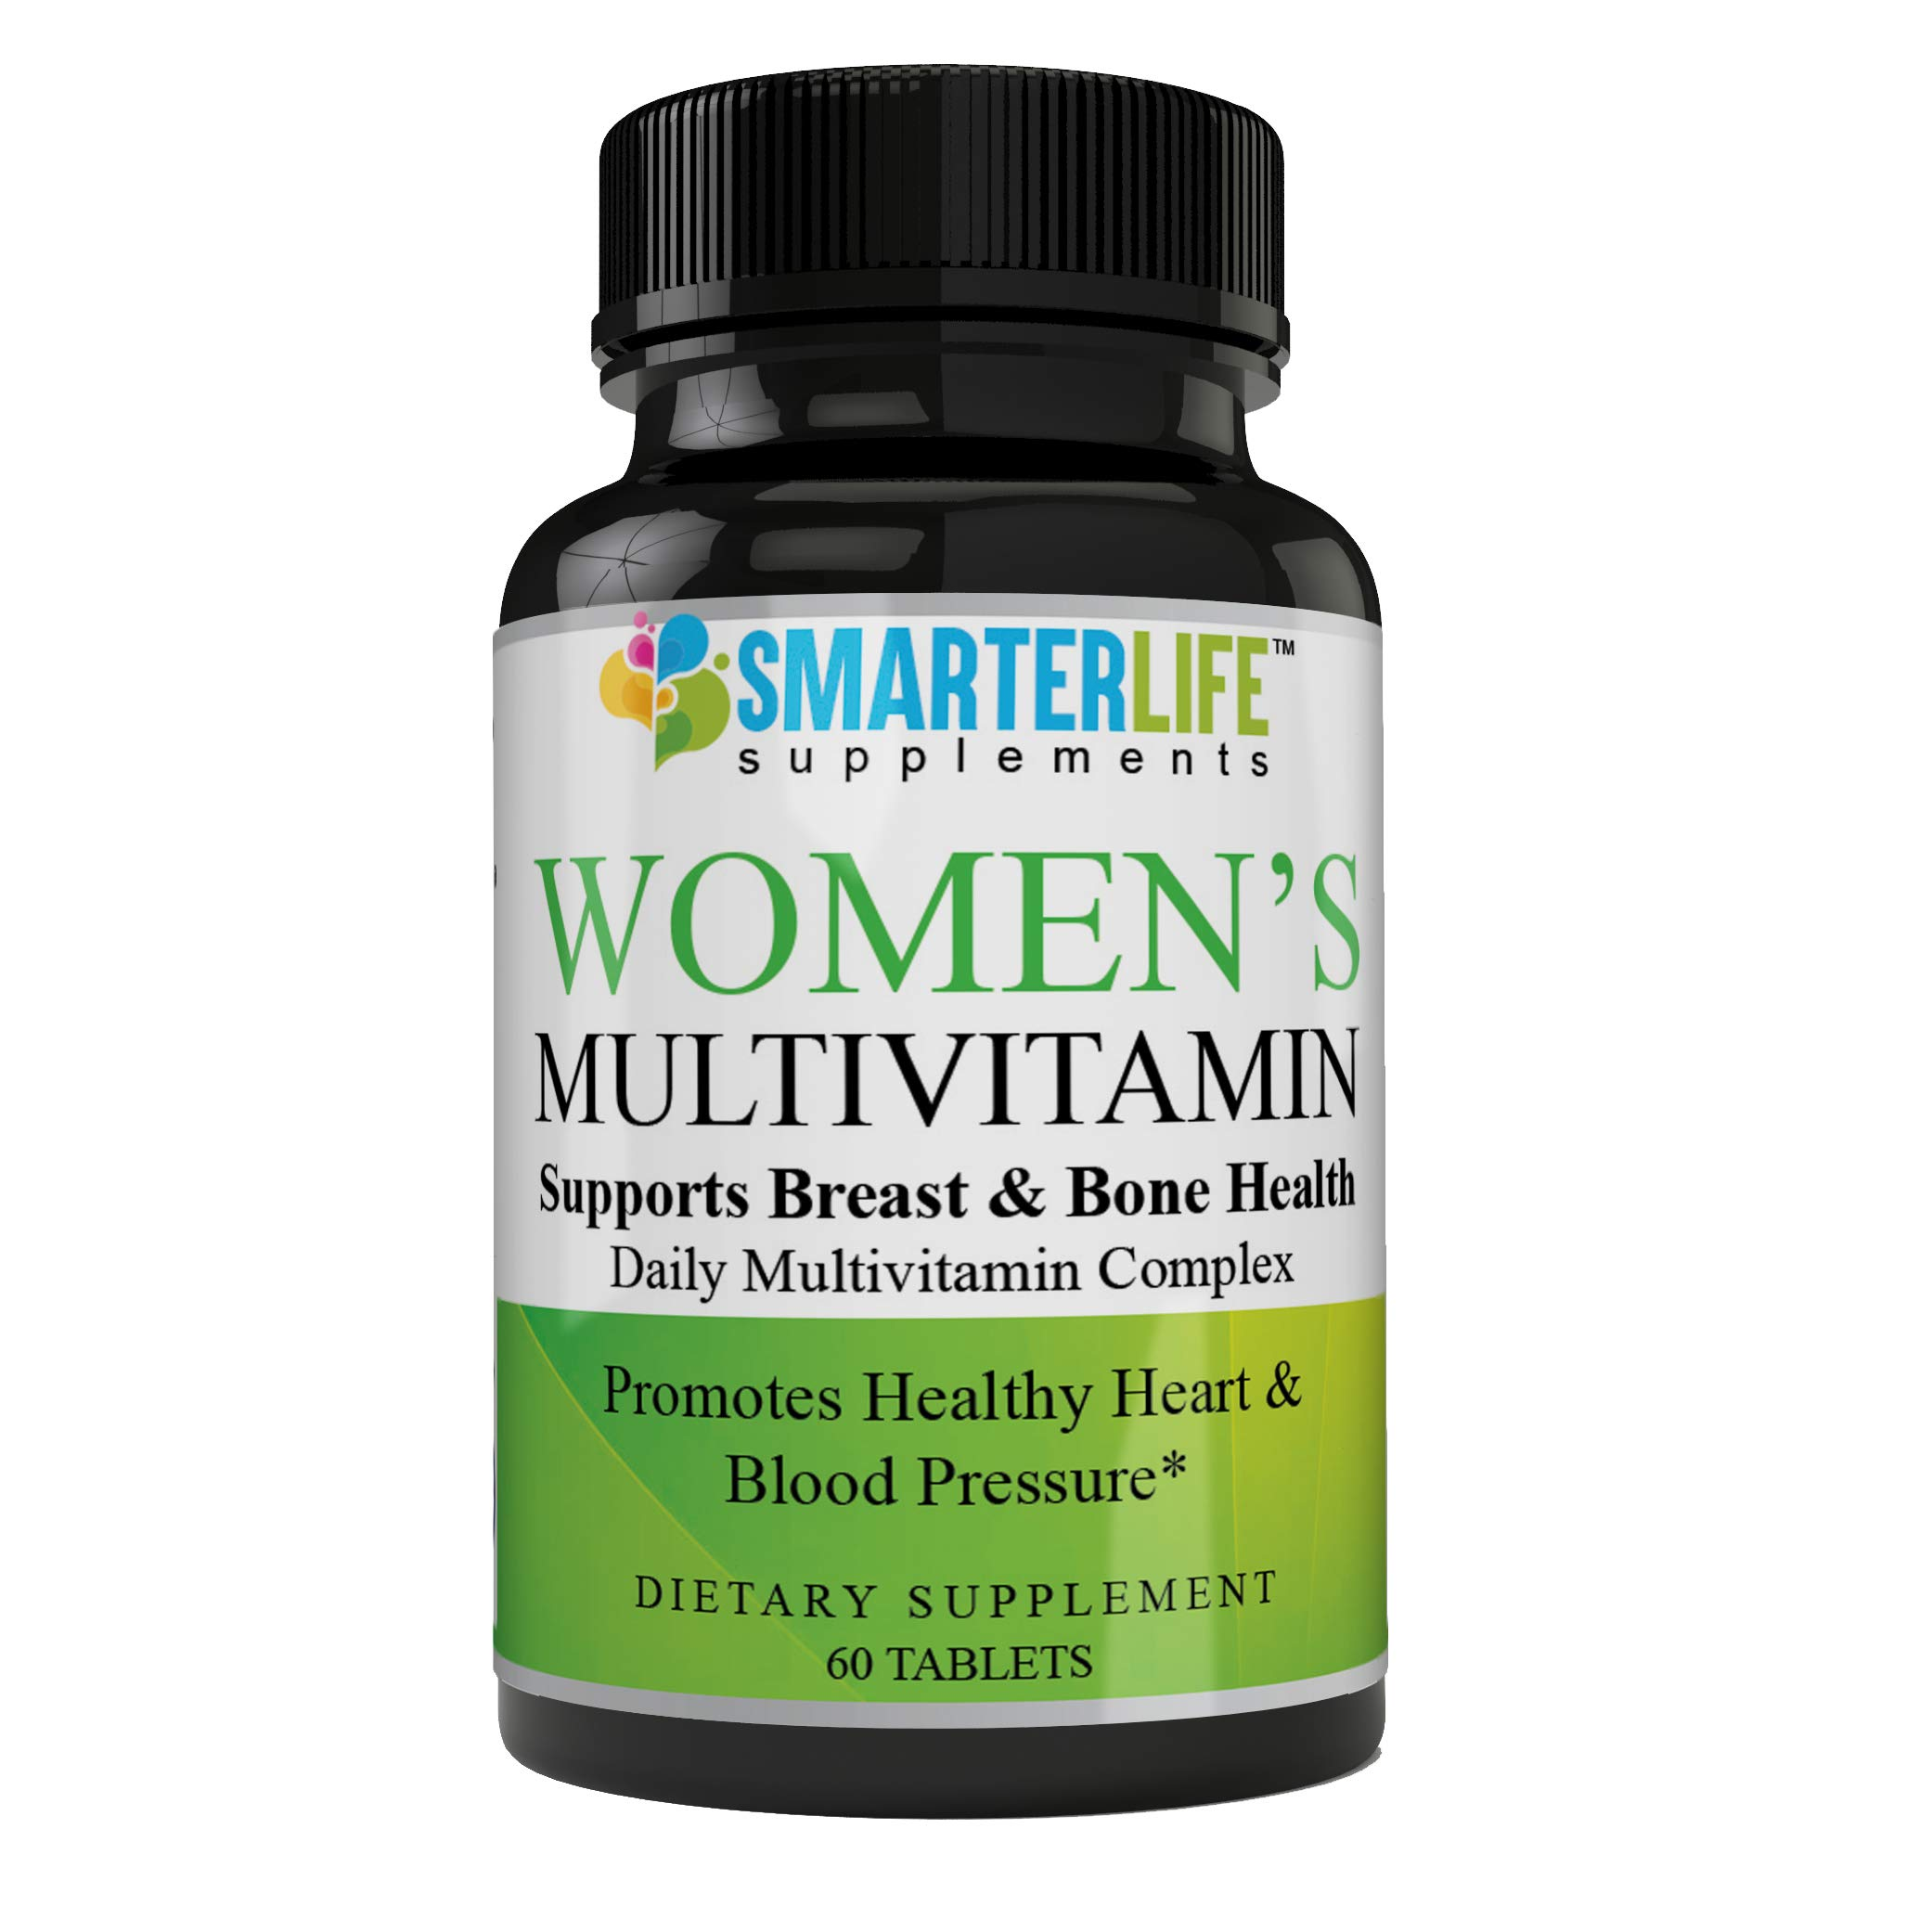 Daily Complex Multivitamin Women Supports